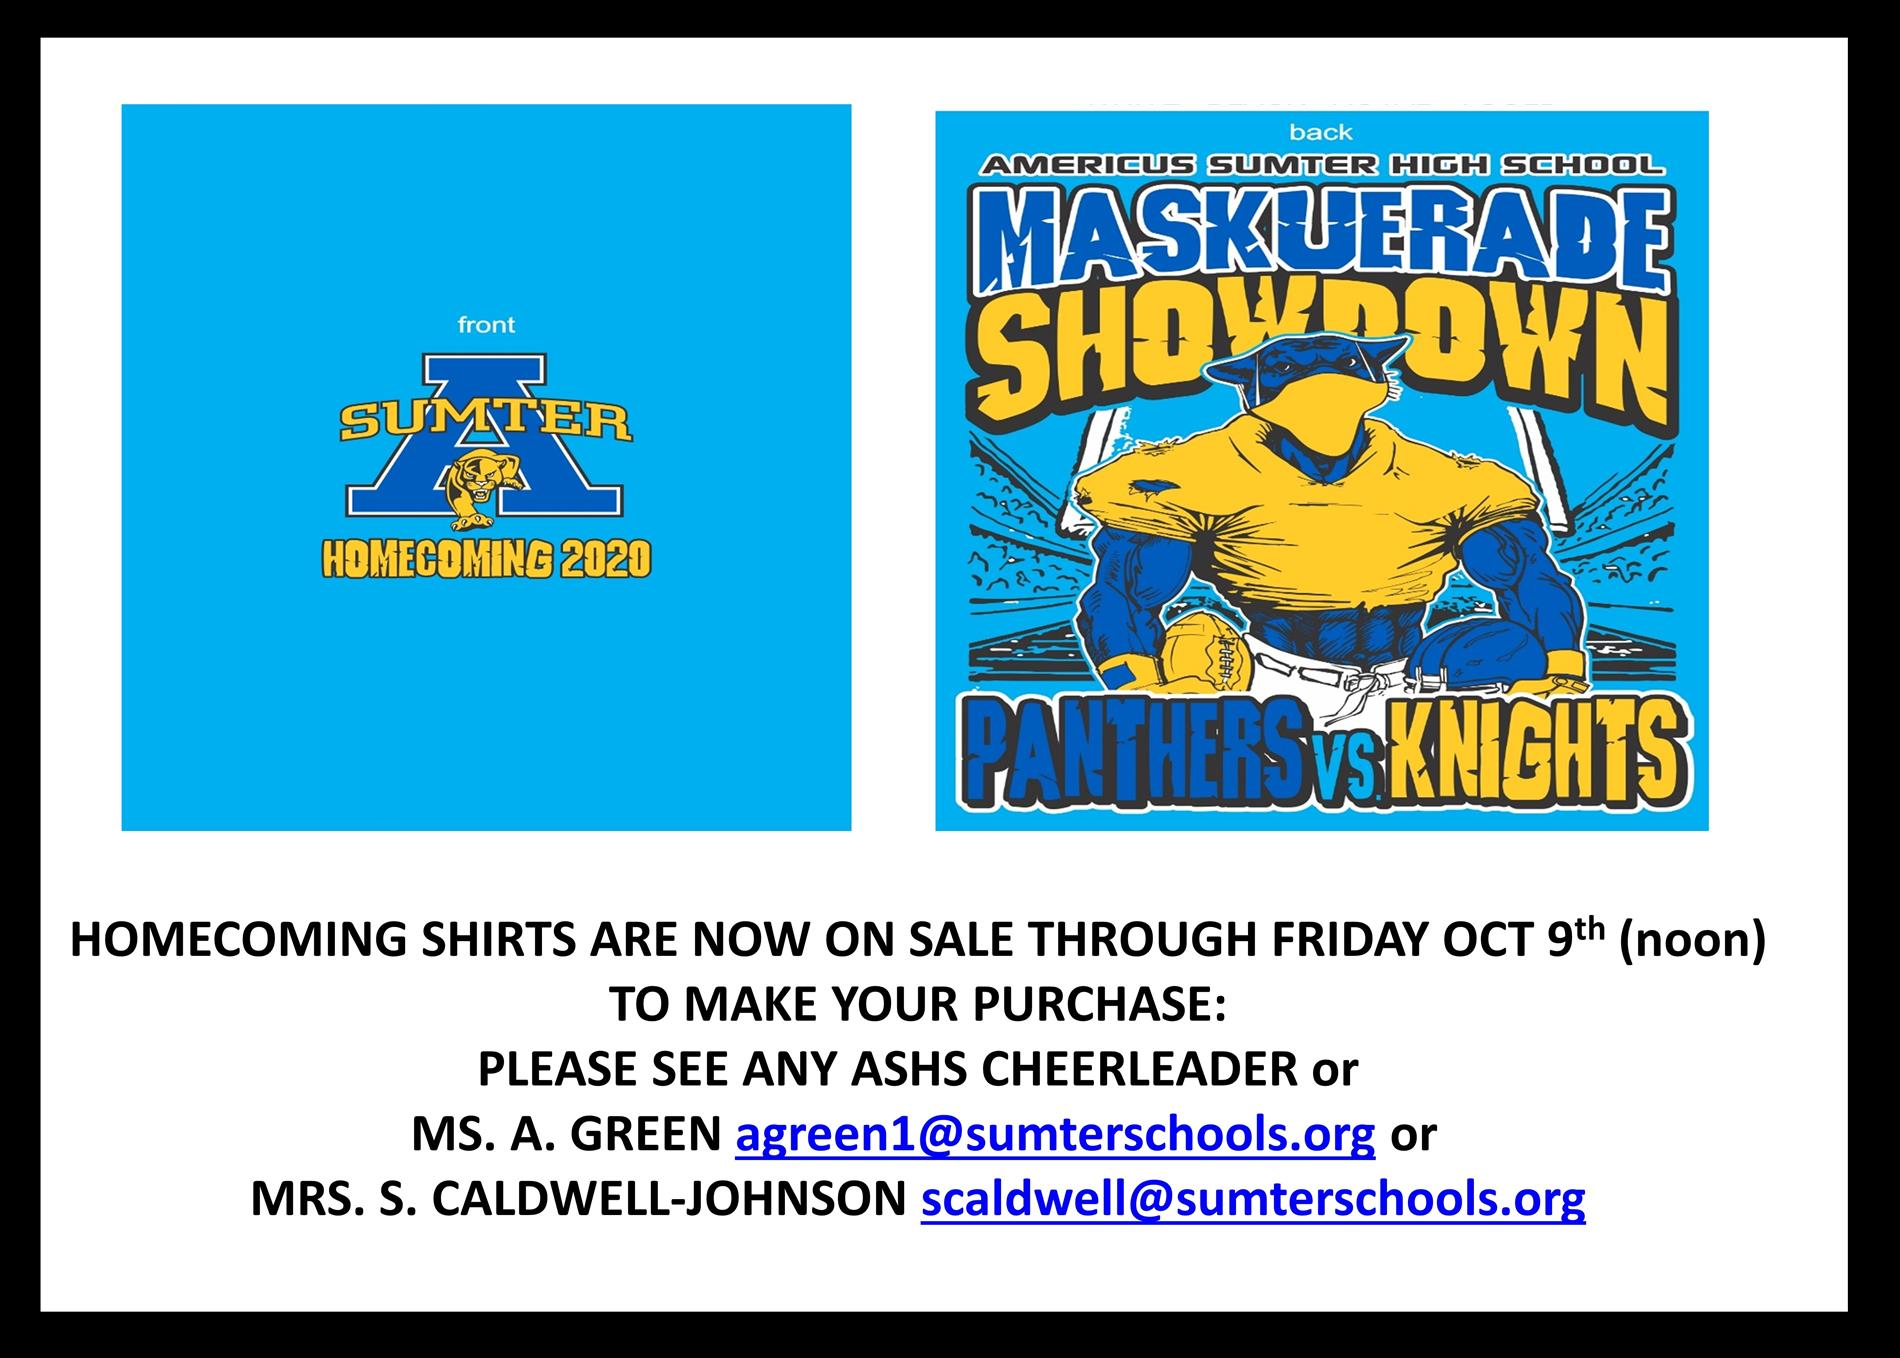 homecoming shirts on sale now